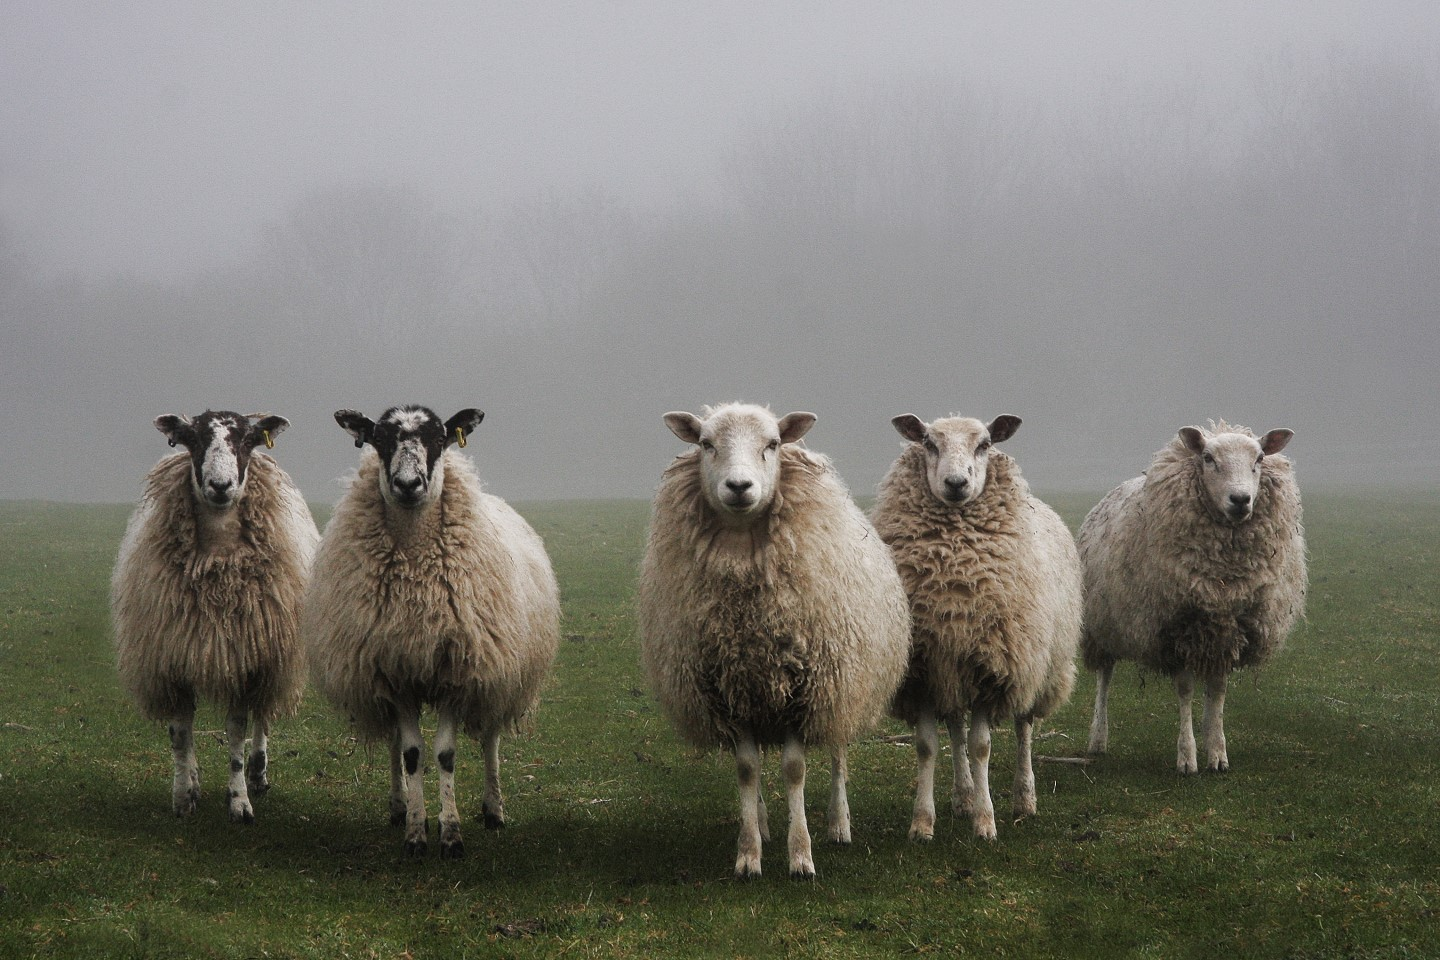 Sheep standing in a line